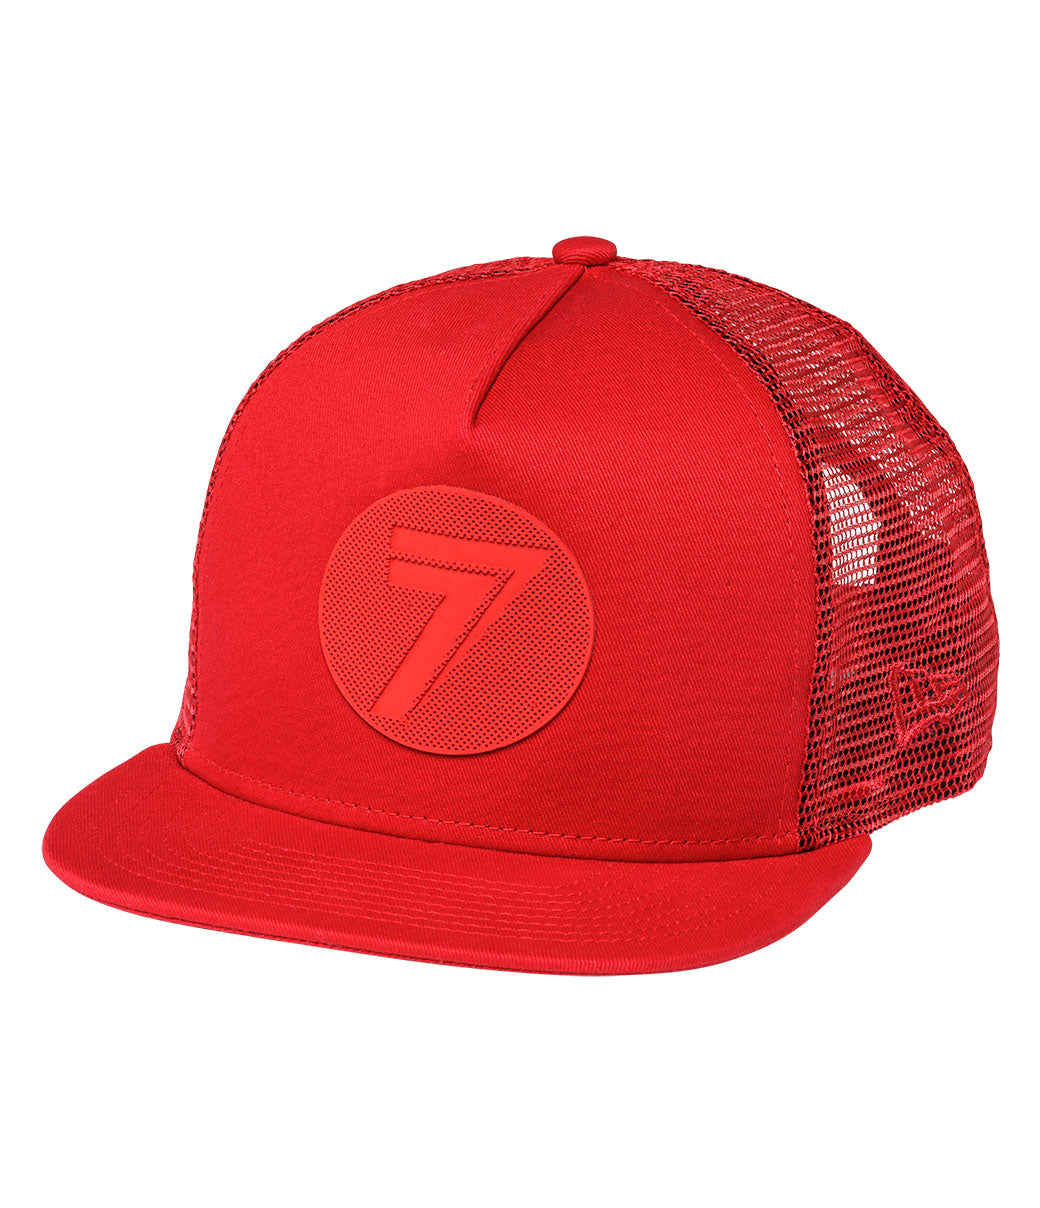 Youth Dot Hat - Red/Red